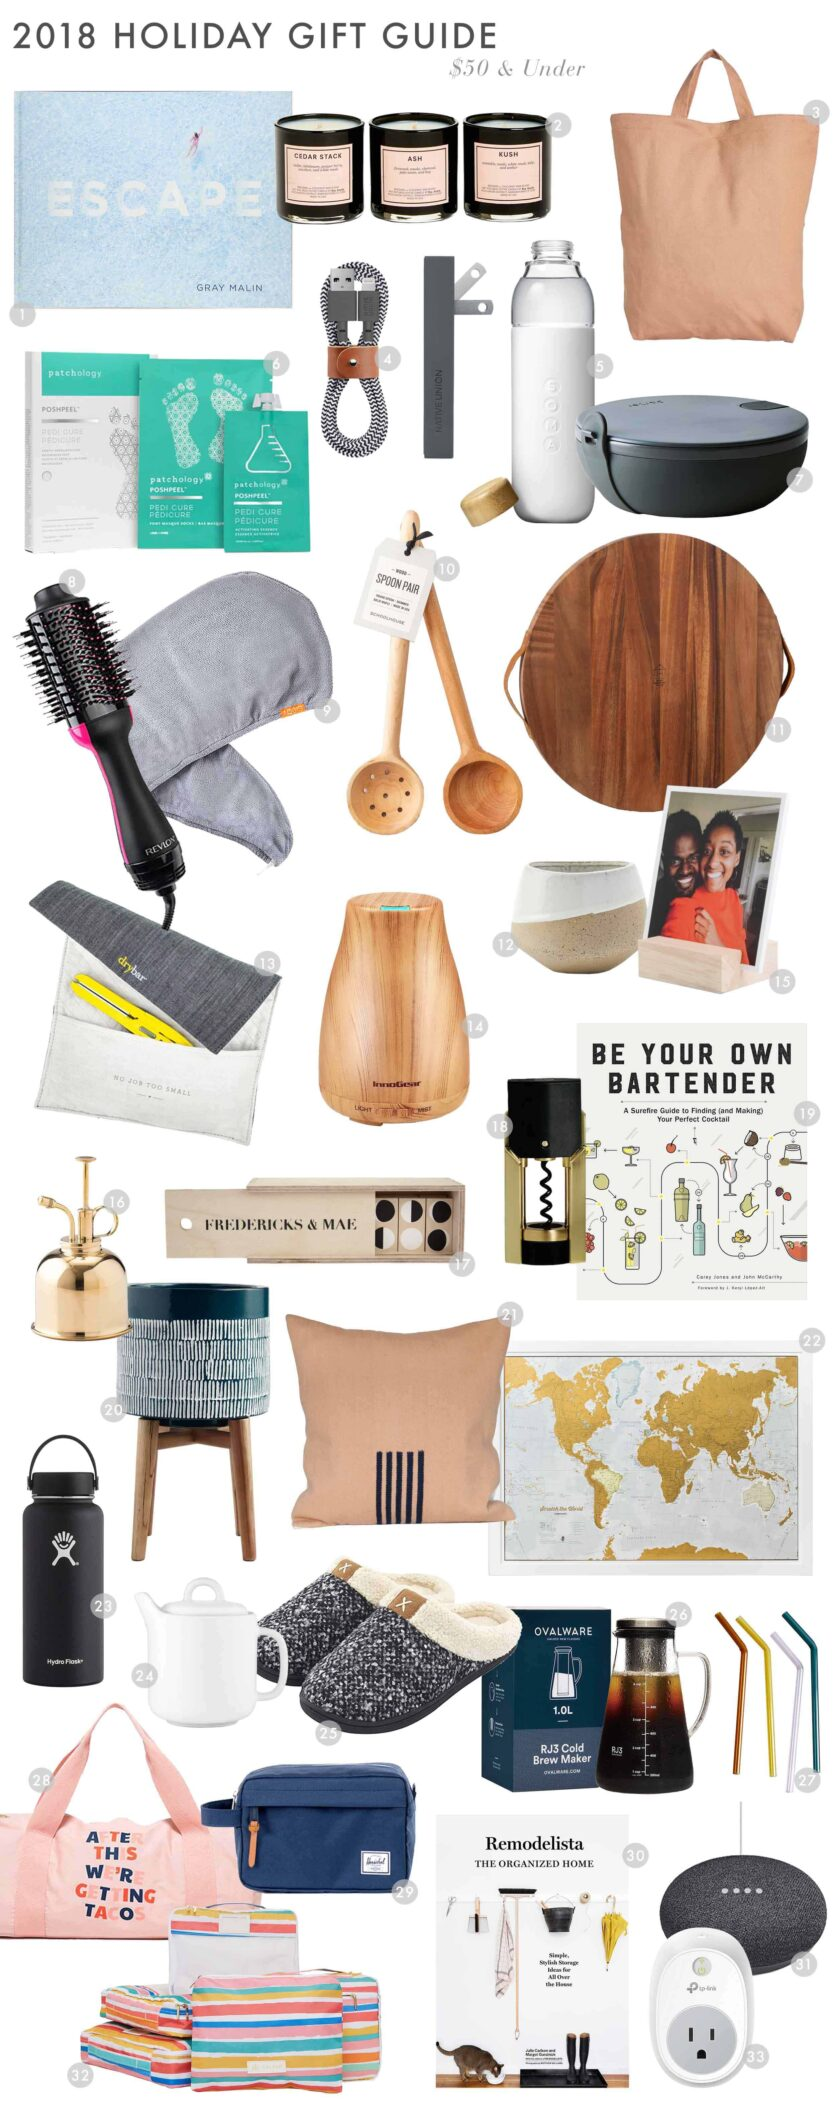 Emily Henderson 2018 Holiday Gift Guide 50 Under Roundup